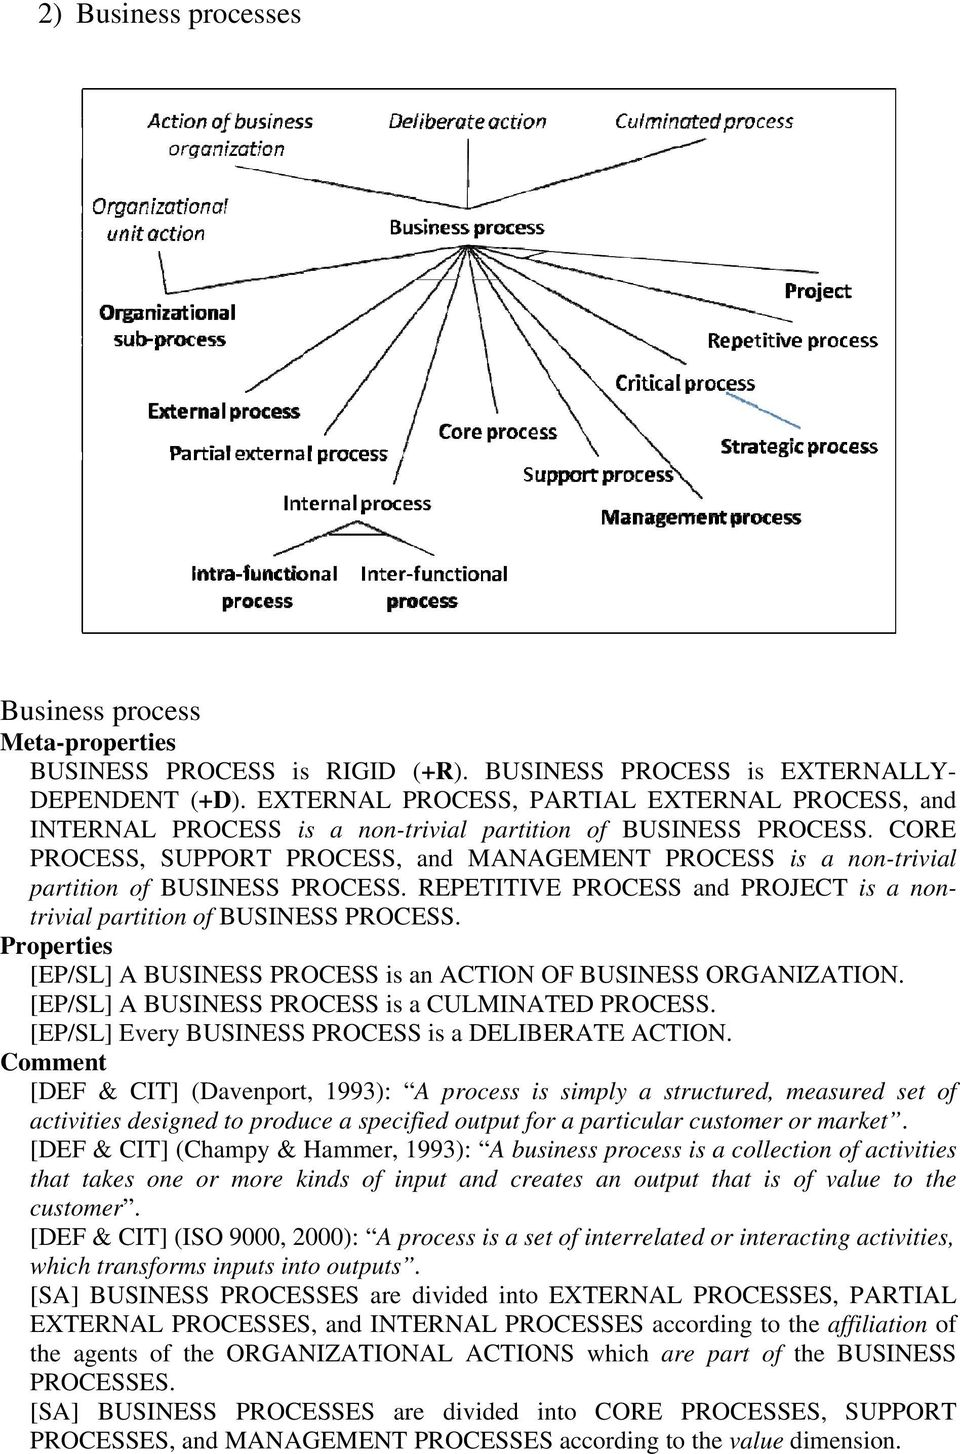 CORE PROCESS, SUPPORT PROCESS, and MANAGEMENT PROCESS is a non-trivial partition of BUSINESS PROCESS. REPETITIVE PROCESS and PROJECT is a nontrivial partition of BUSINESS PROCESS.